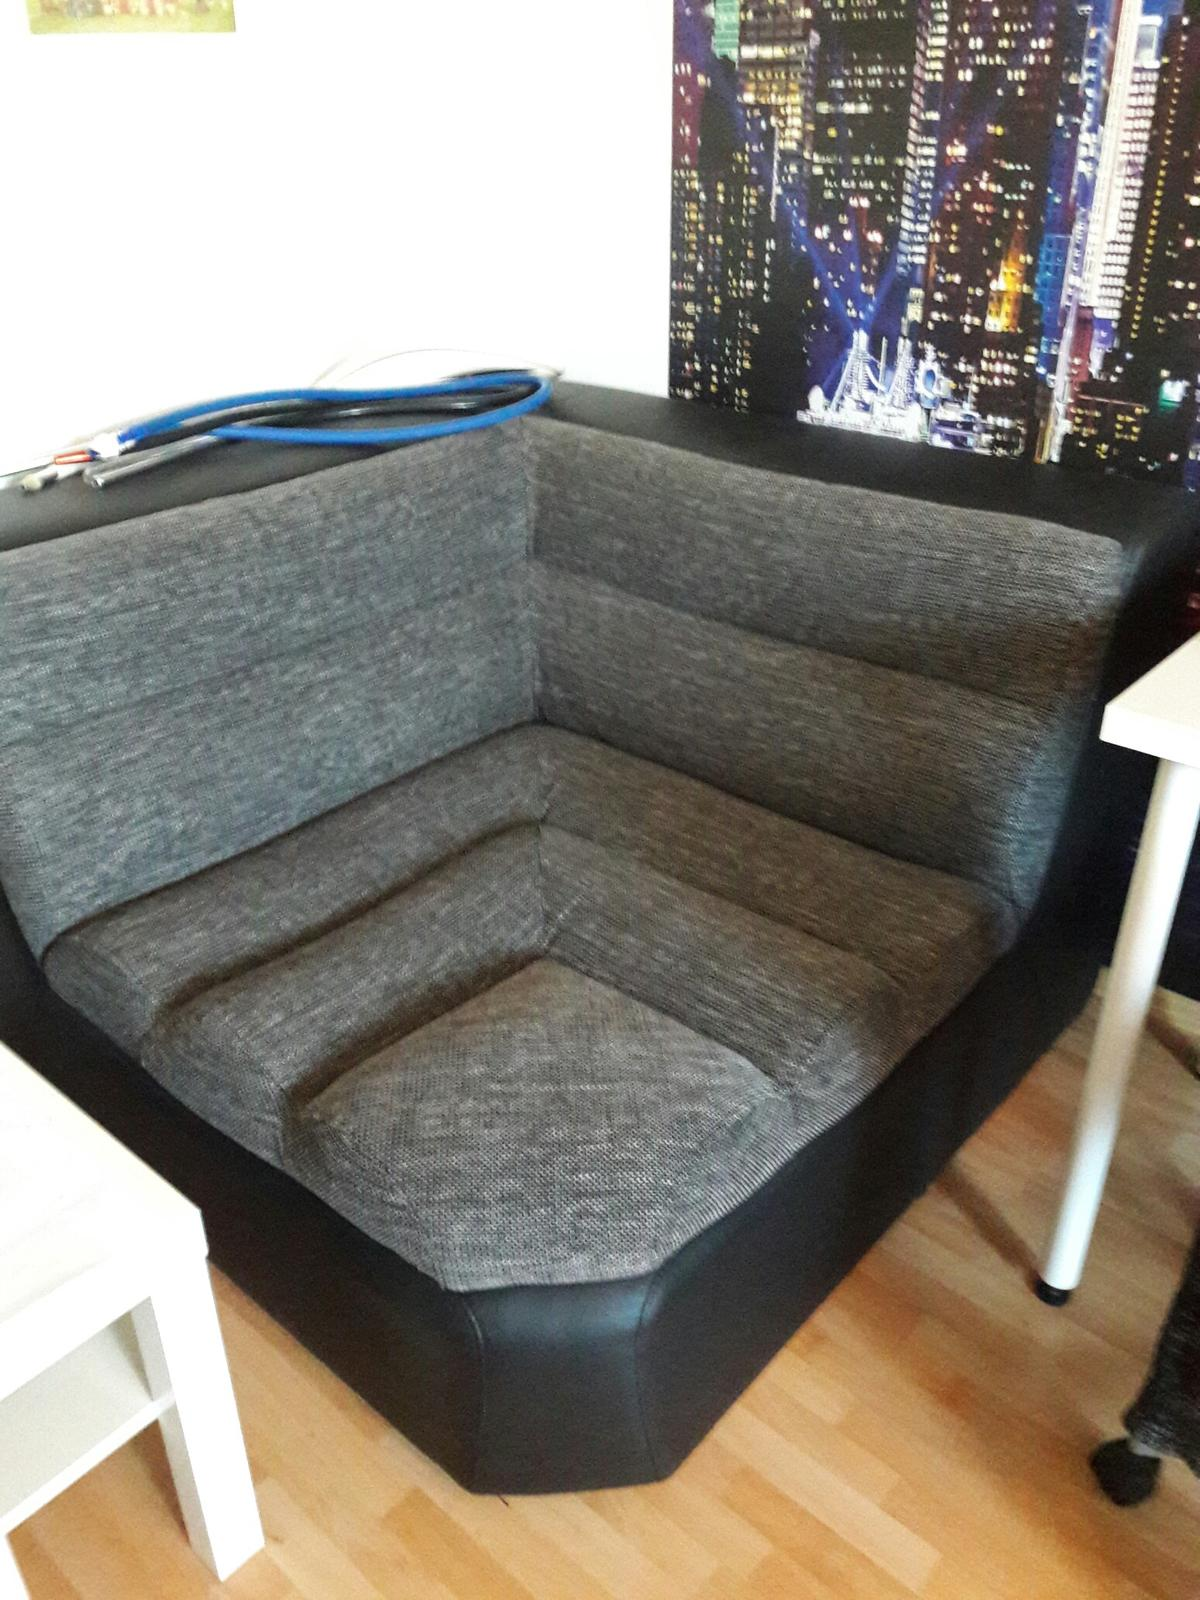 Bettsofa Jugend Mini Ecksofa In 90530 Wendelstein For Free For Sale Shpock